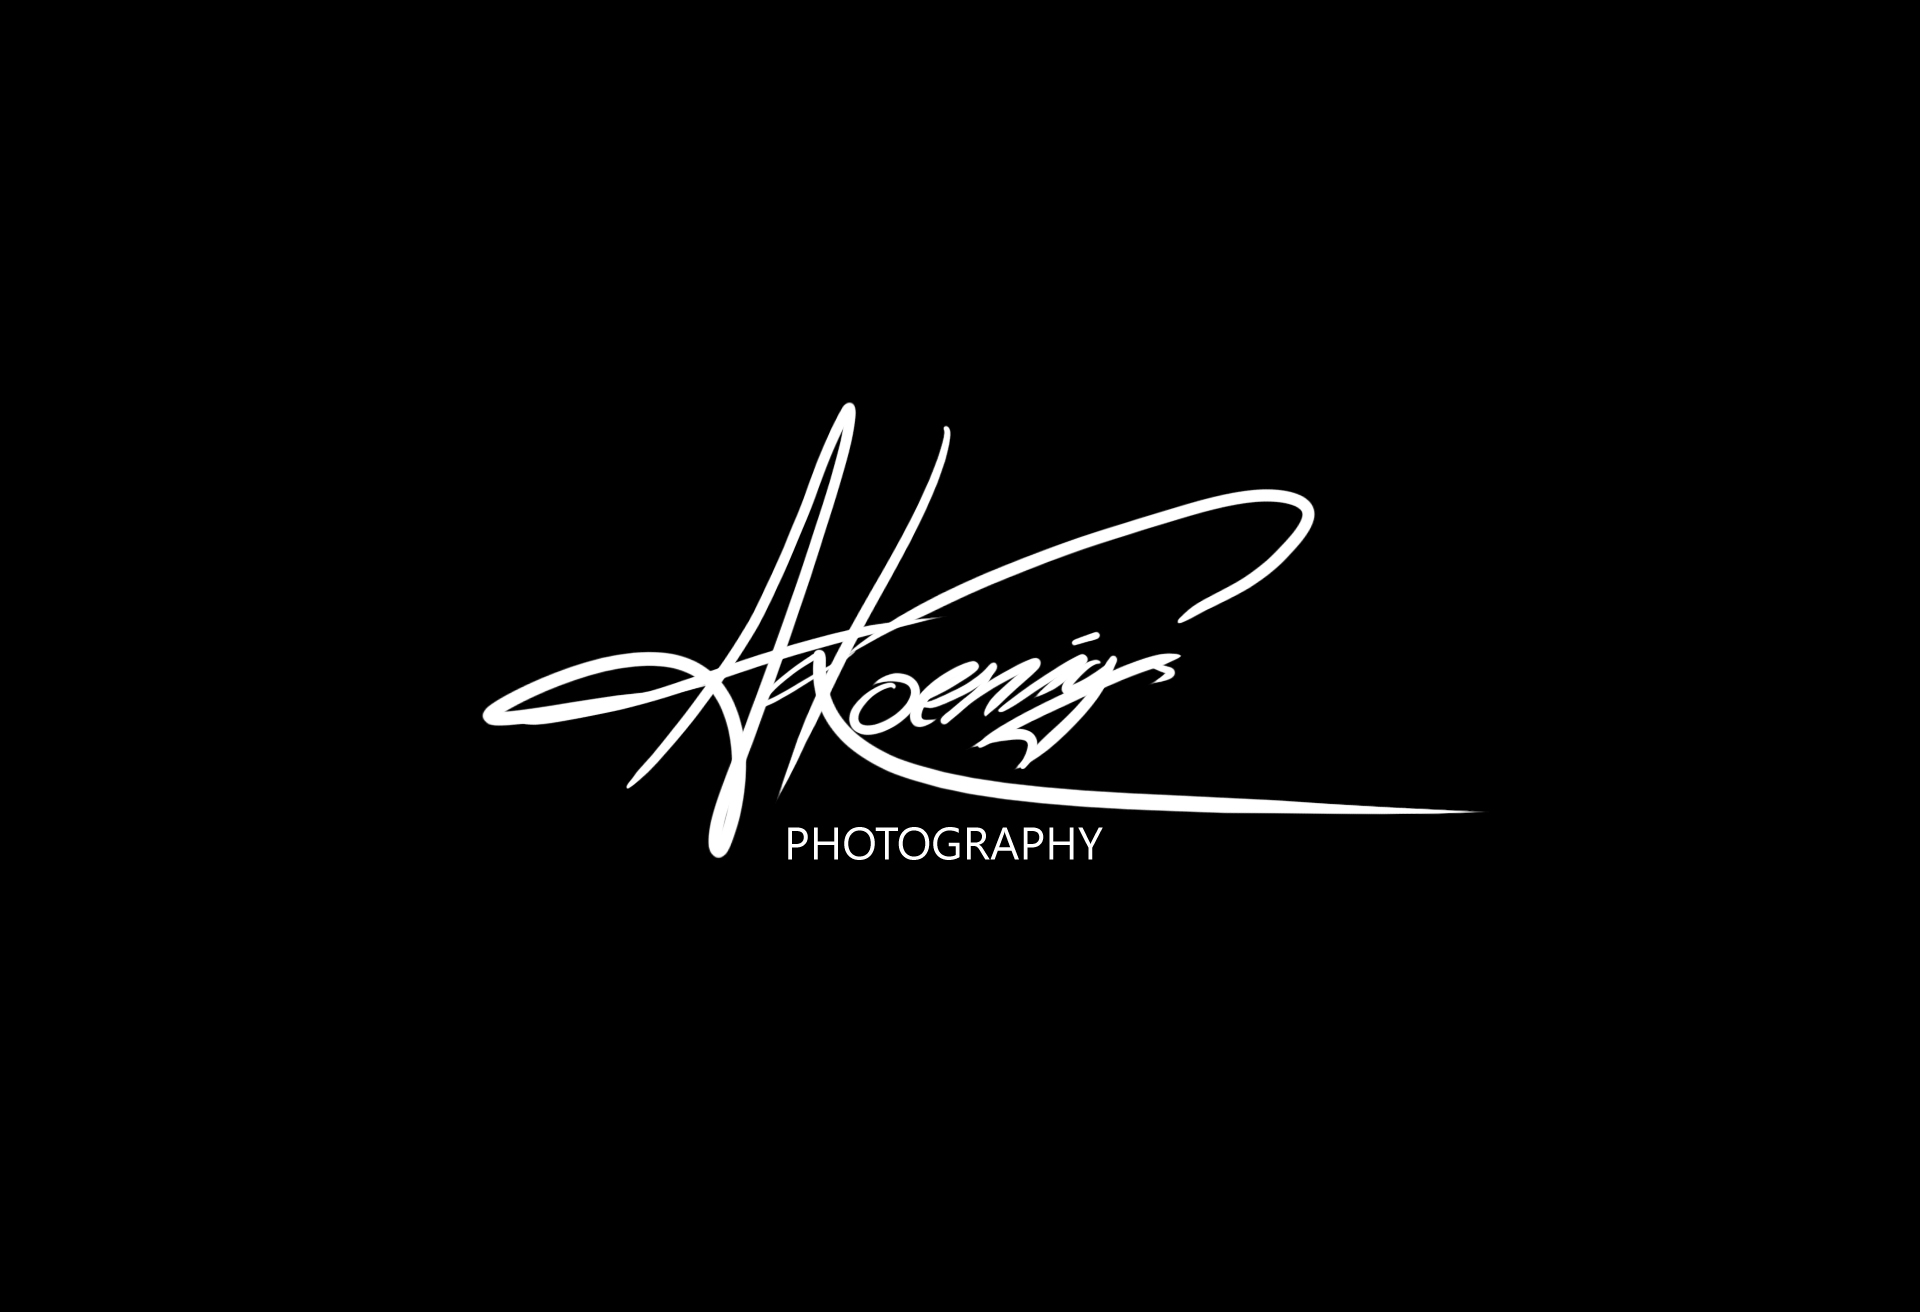 TKoenigs photography logo